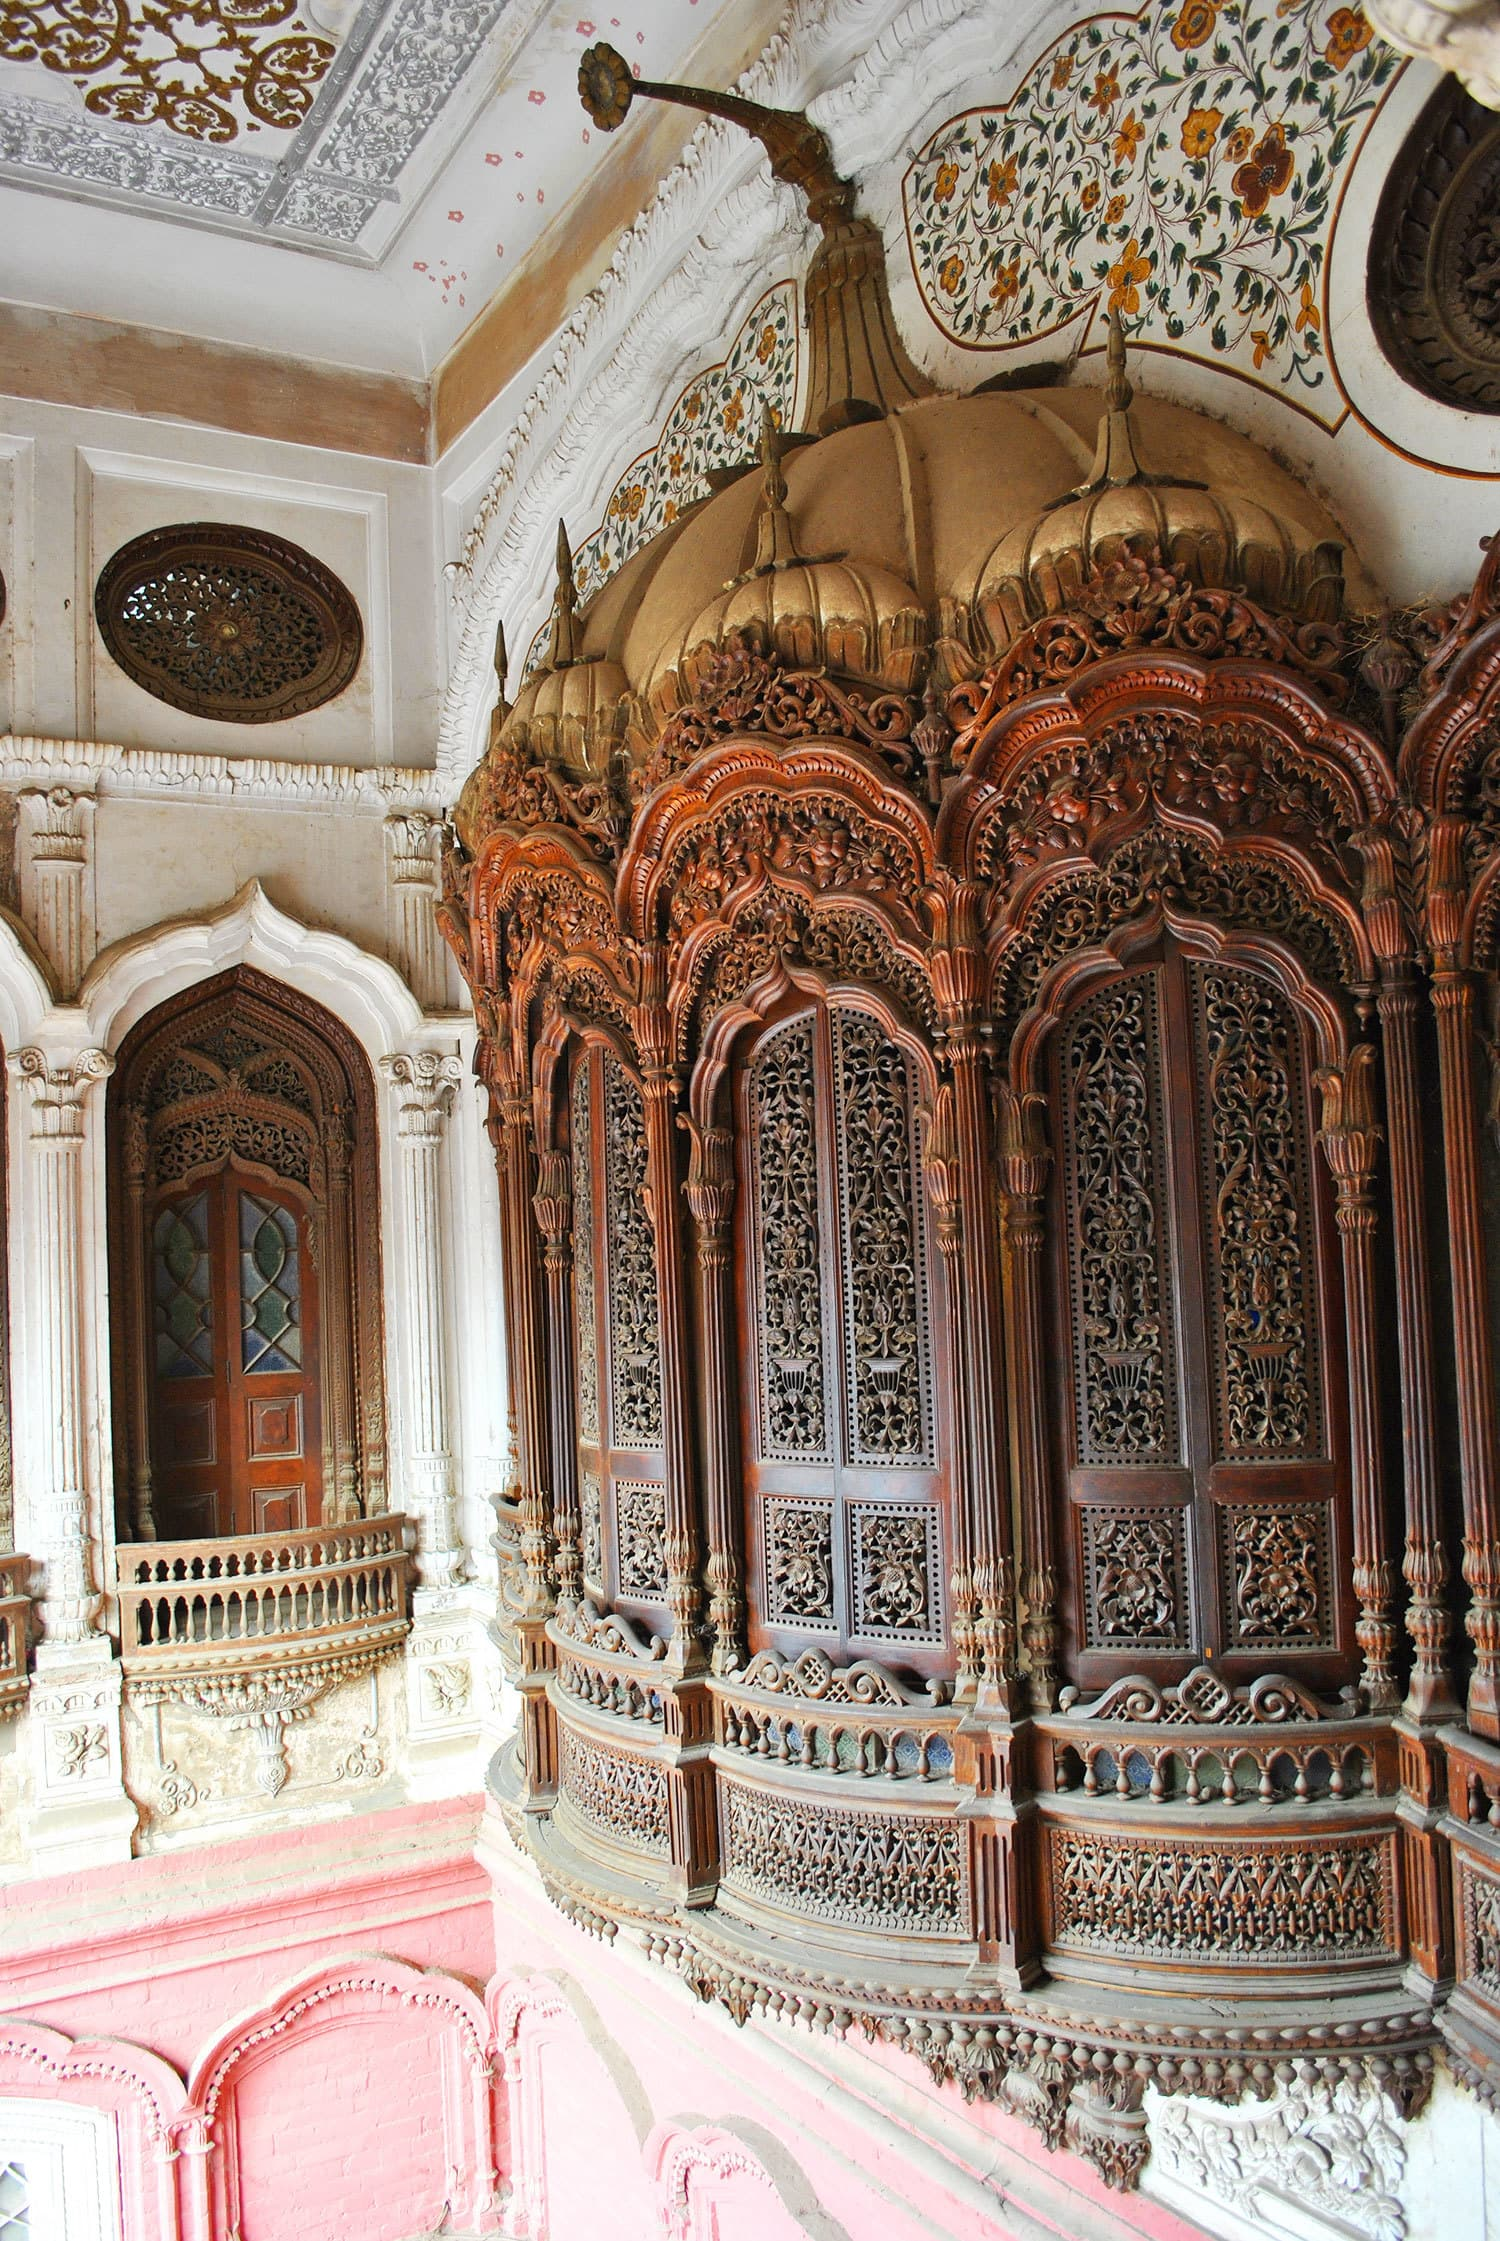 Jharoka with *munabat kari* — a masterpiece of the Pirjahs.